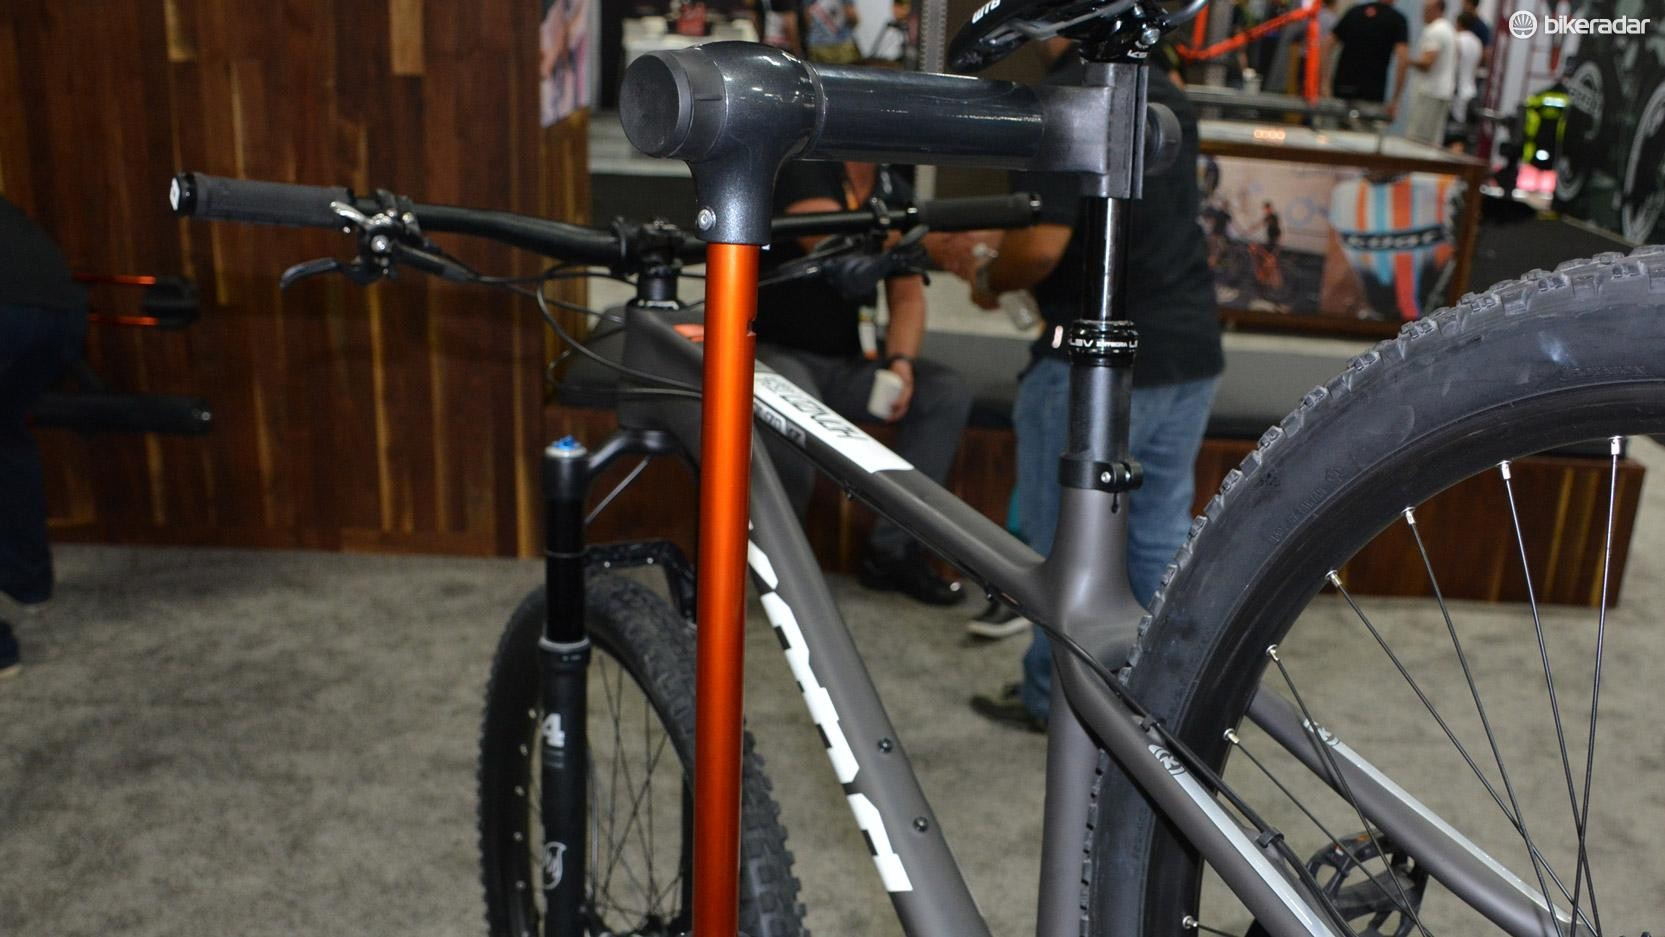 The rack's workstand can be popped off and put on top of a proper standalone stand